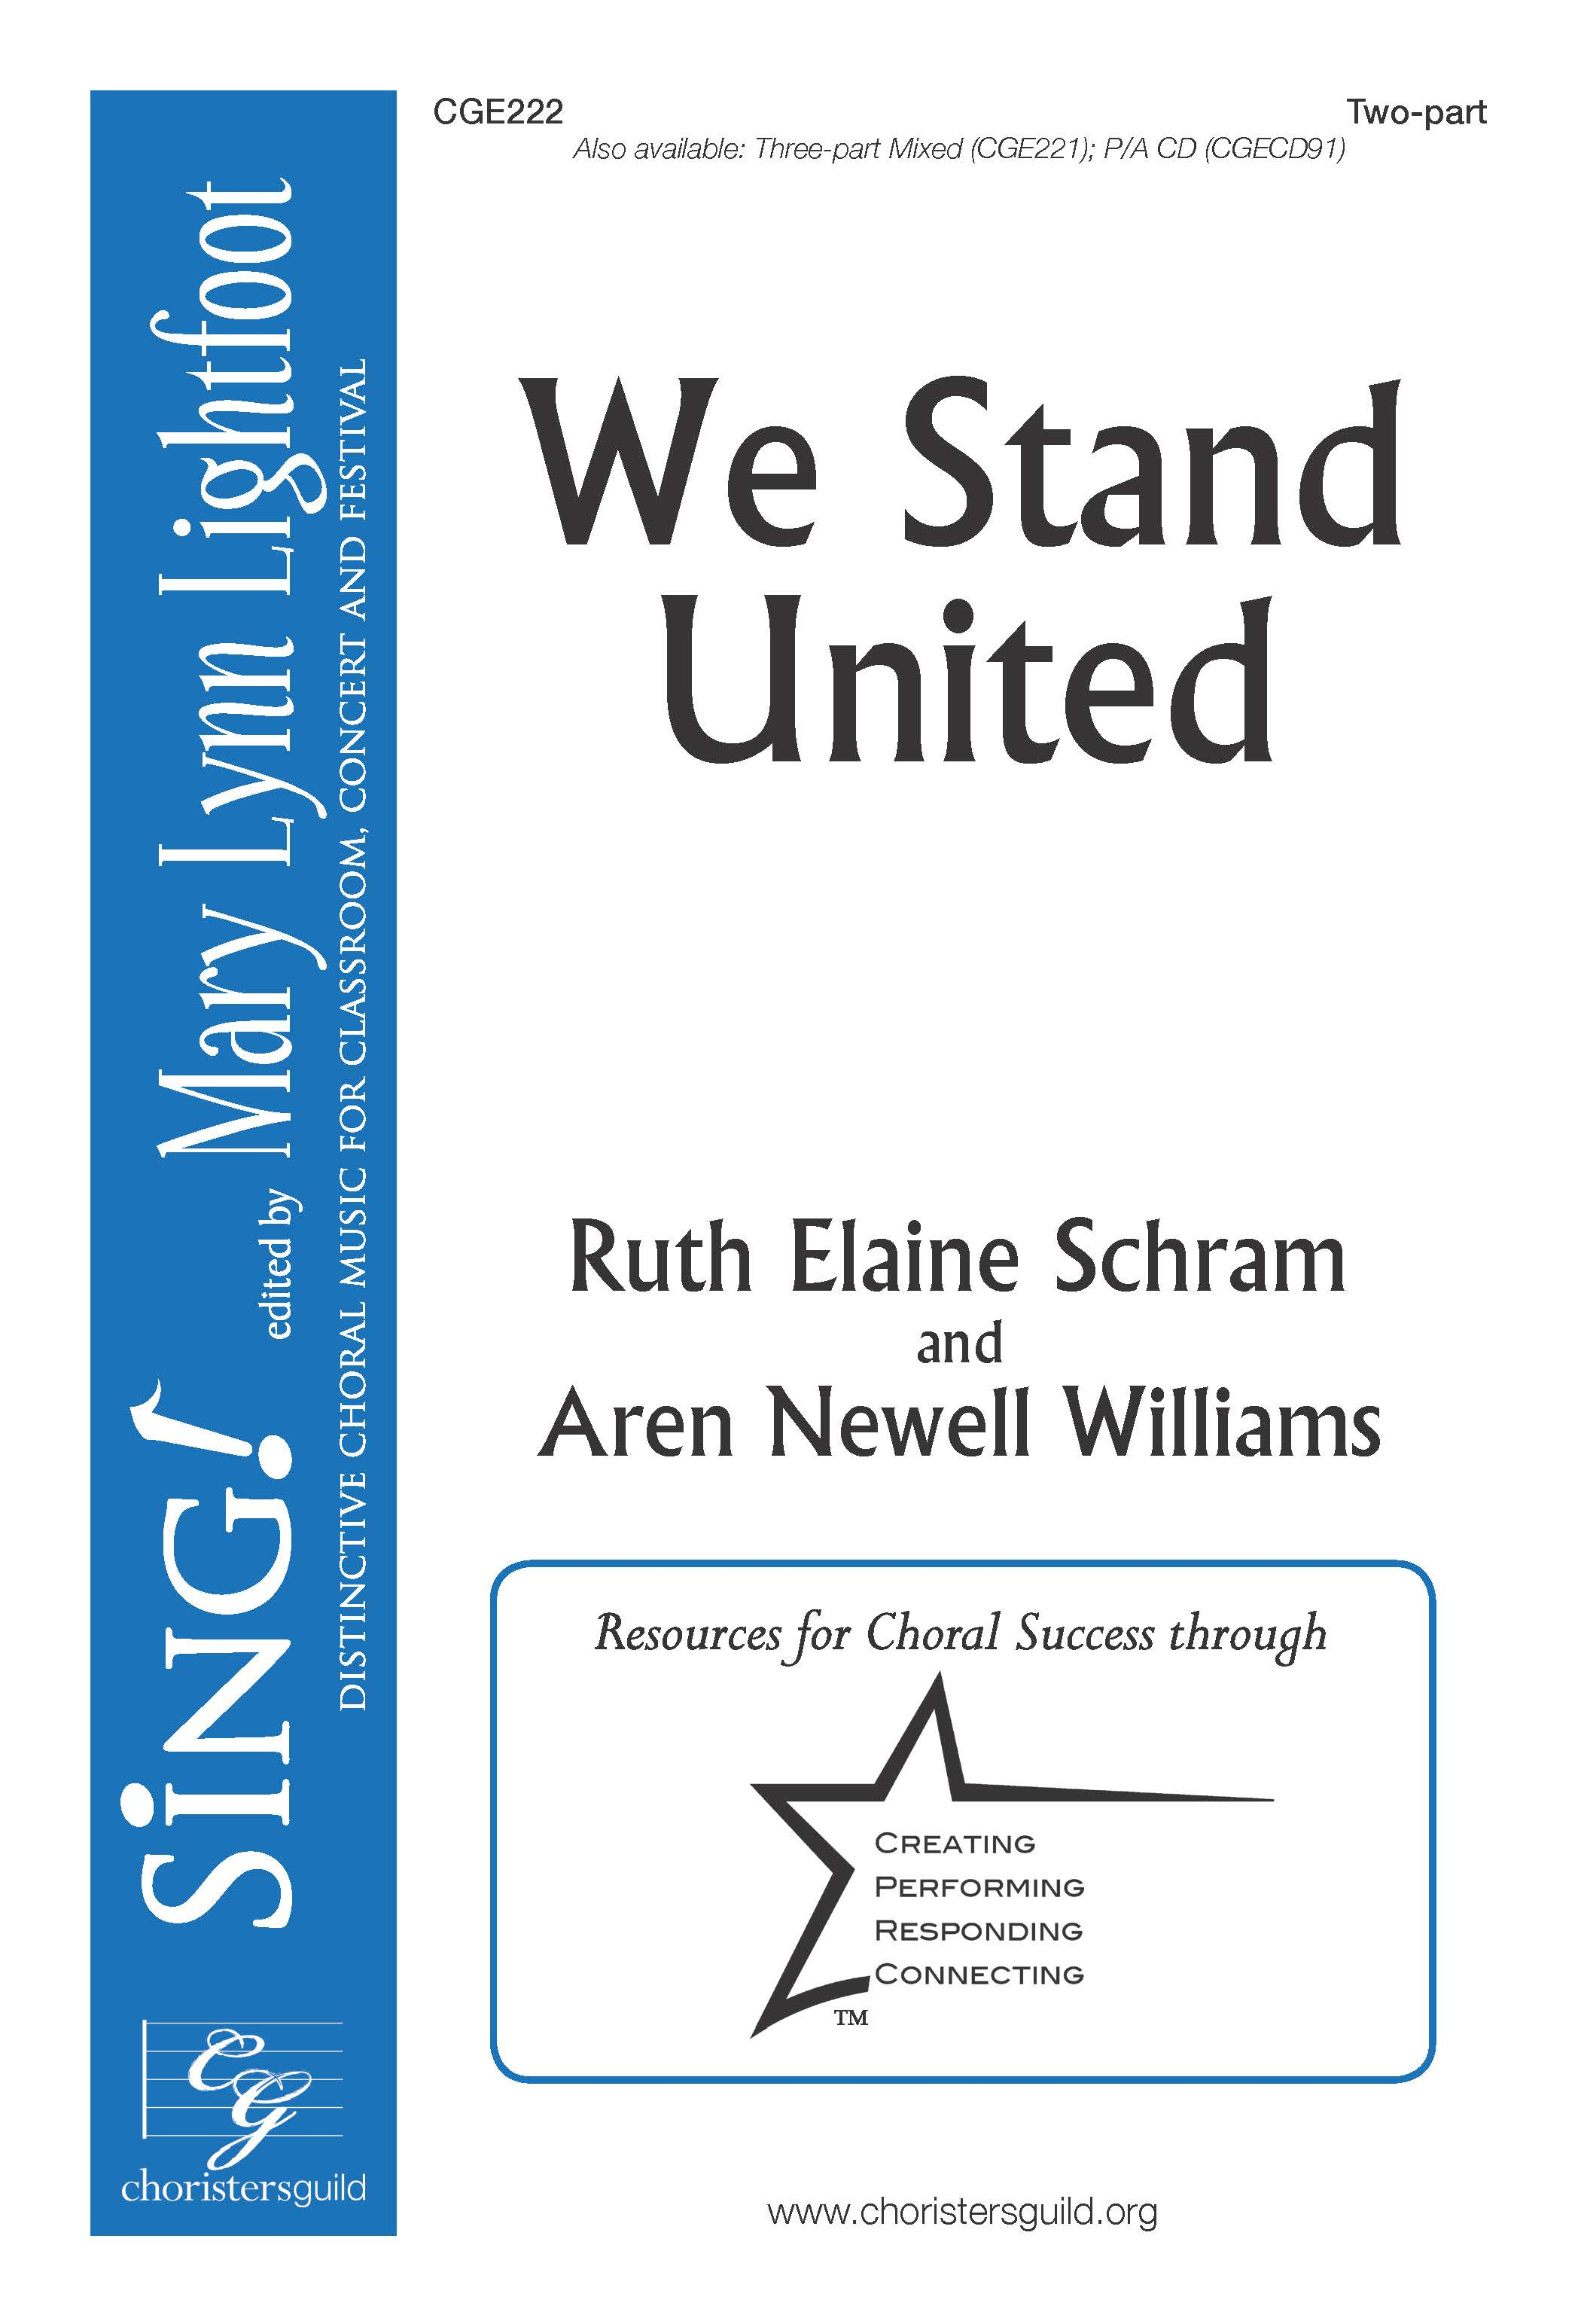 We Stand United Two-part